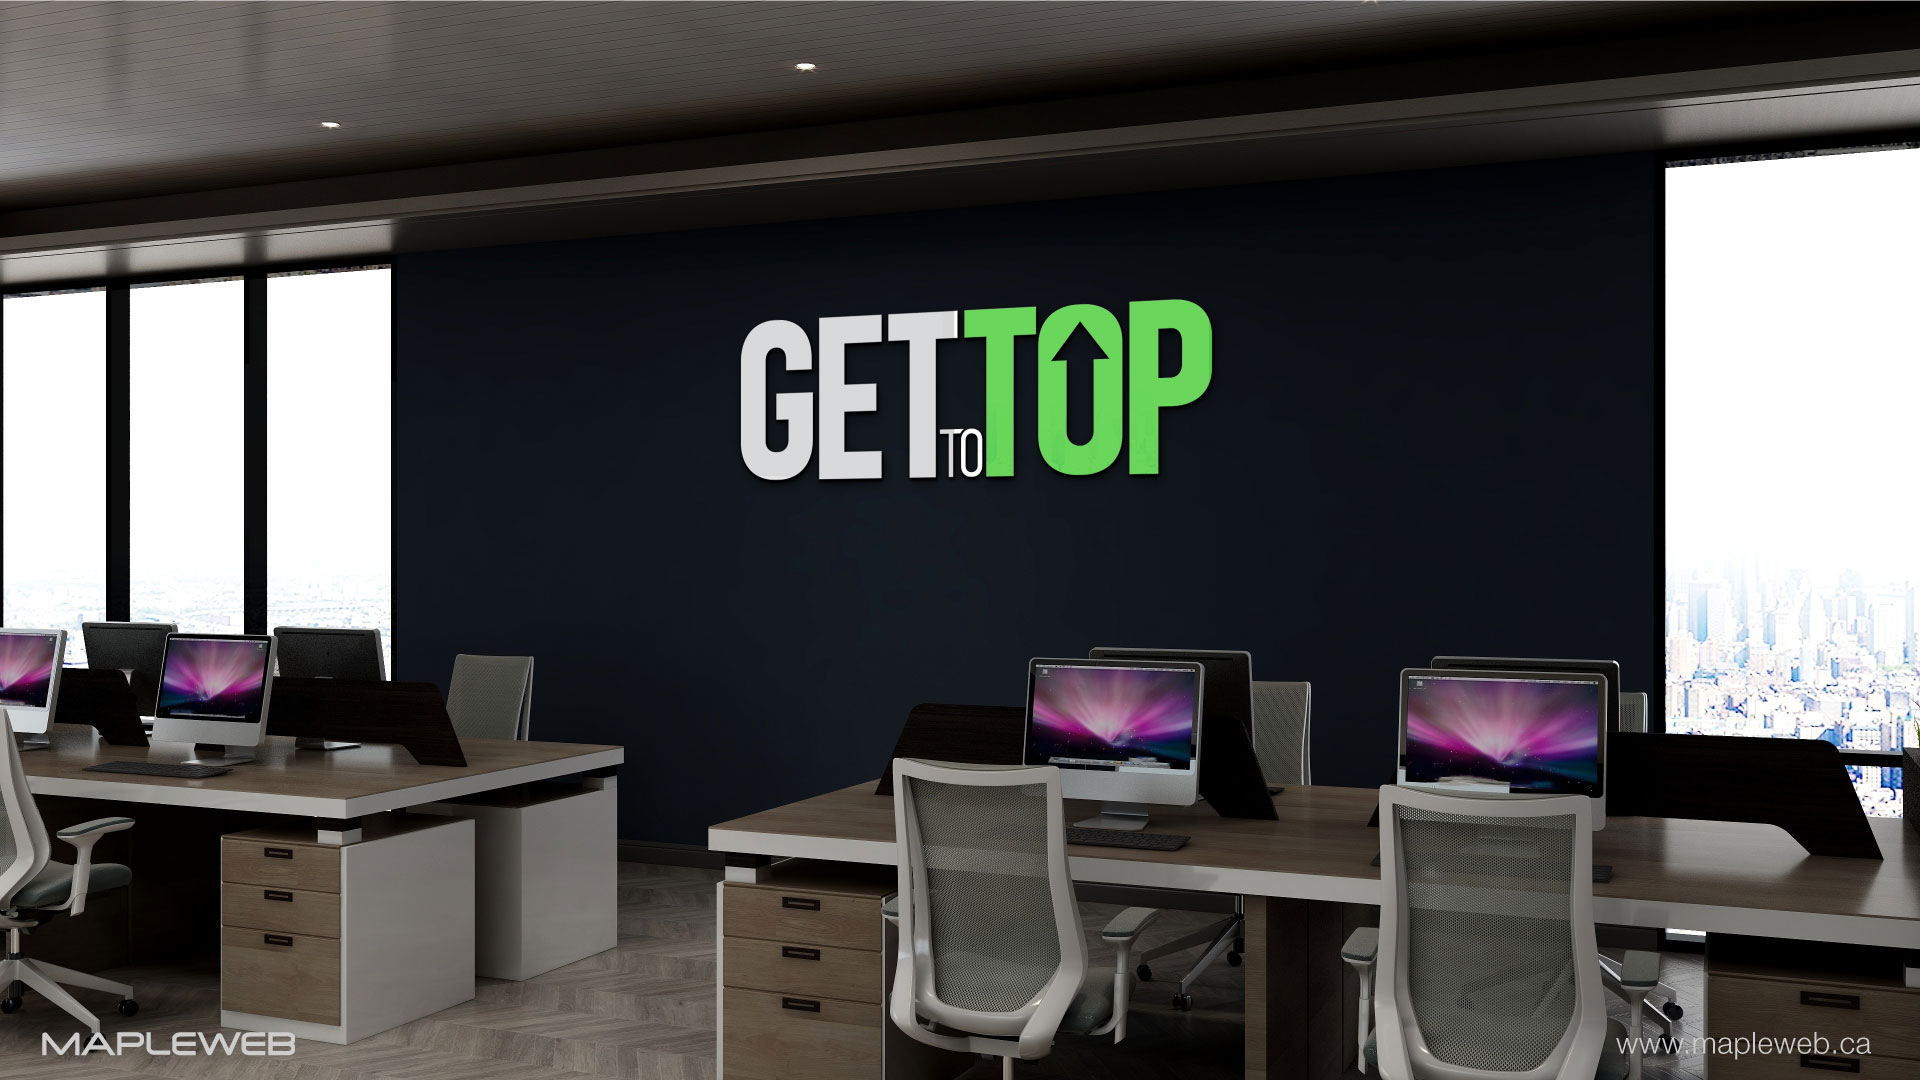 gettotop-brand-logo-design-by-mapleweb-vancouver-canada-wall-mock